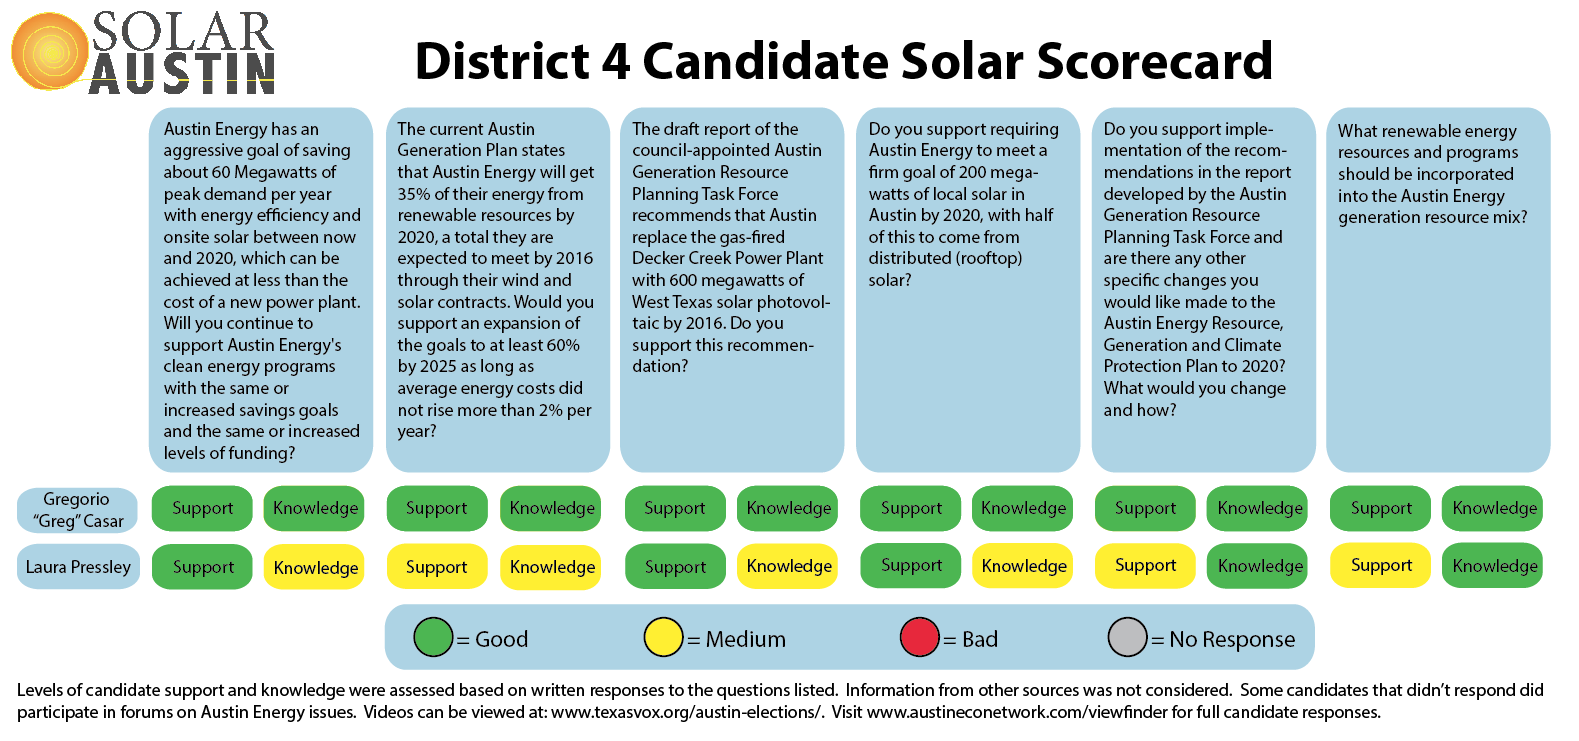 2014 Solar Austin Council District 4 Candidate Solar Scorecard - Runoffs